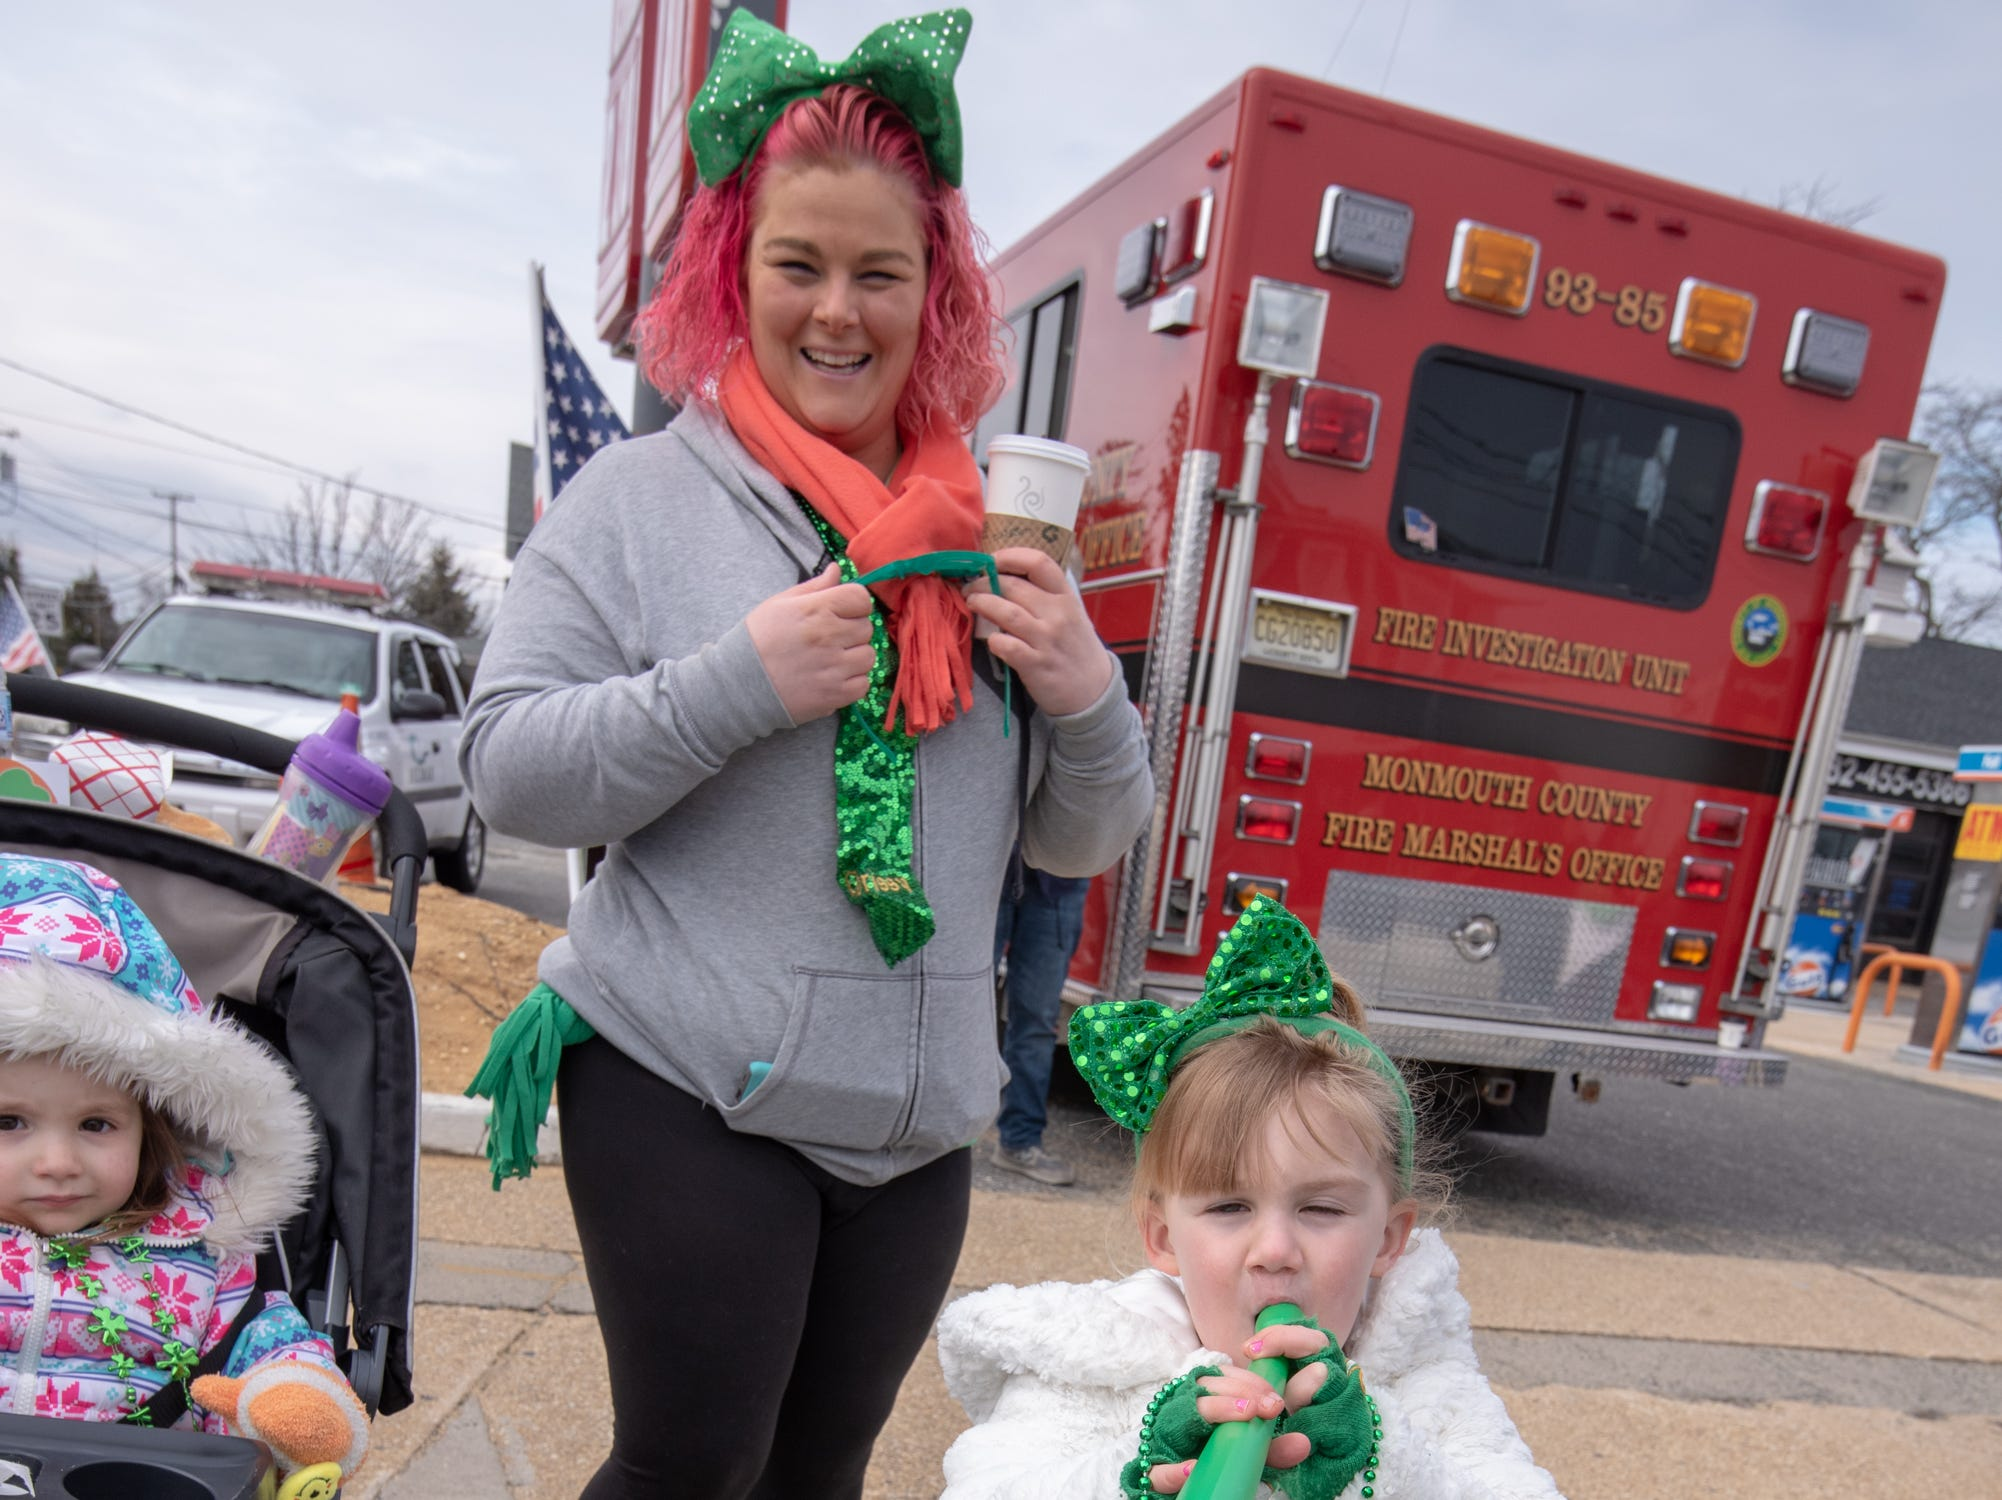 Christina Ralston, Farmingdale, watches her daughter Olivia, 4, toot her horn during the parade.The 46th annual Belmar/Lake Como St. Patrick's Day Parade was held in Belmar on March 3, 2019.